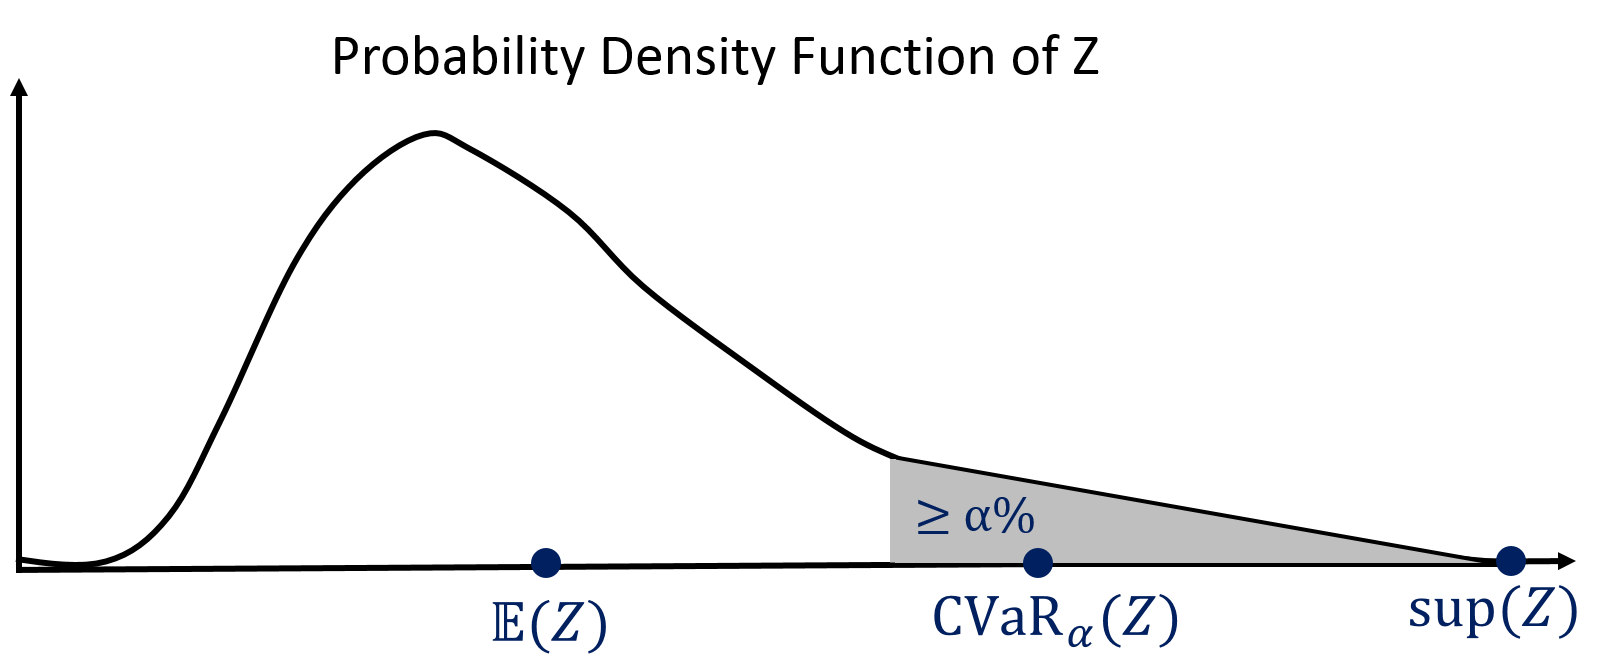 Conditional Value-at-Risk (CVaR) is a measure of one-sided tail risk of a random variable Z. CVaRα(Z) is the mean of the α%-worst realizations of Z, if Z is a continuous random variable. CVaR is also called Average Value-at-Risk.